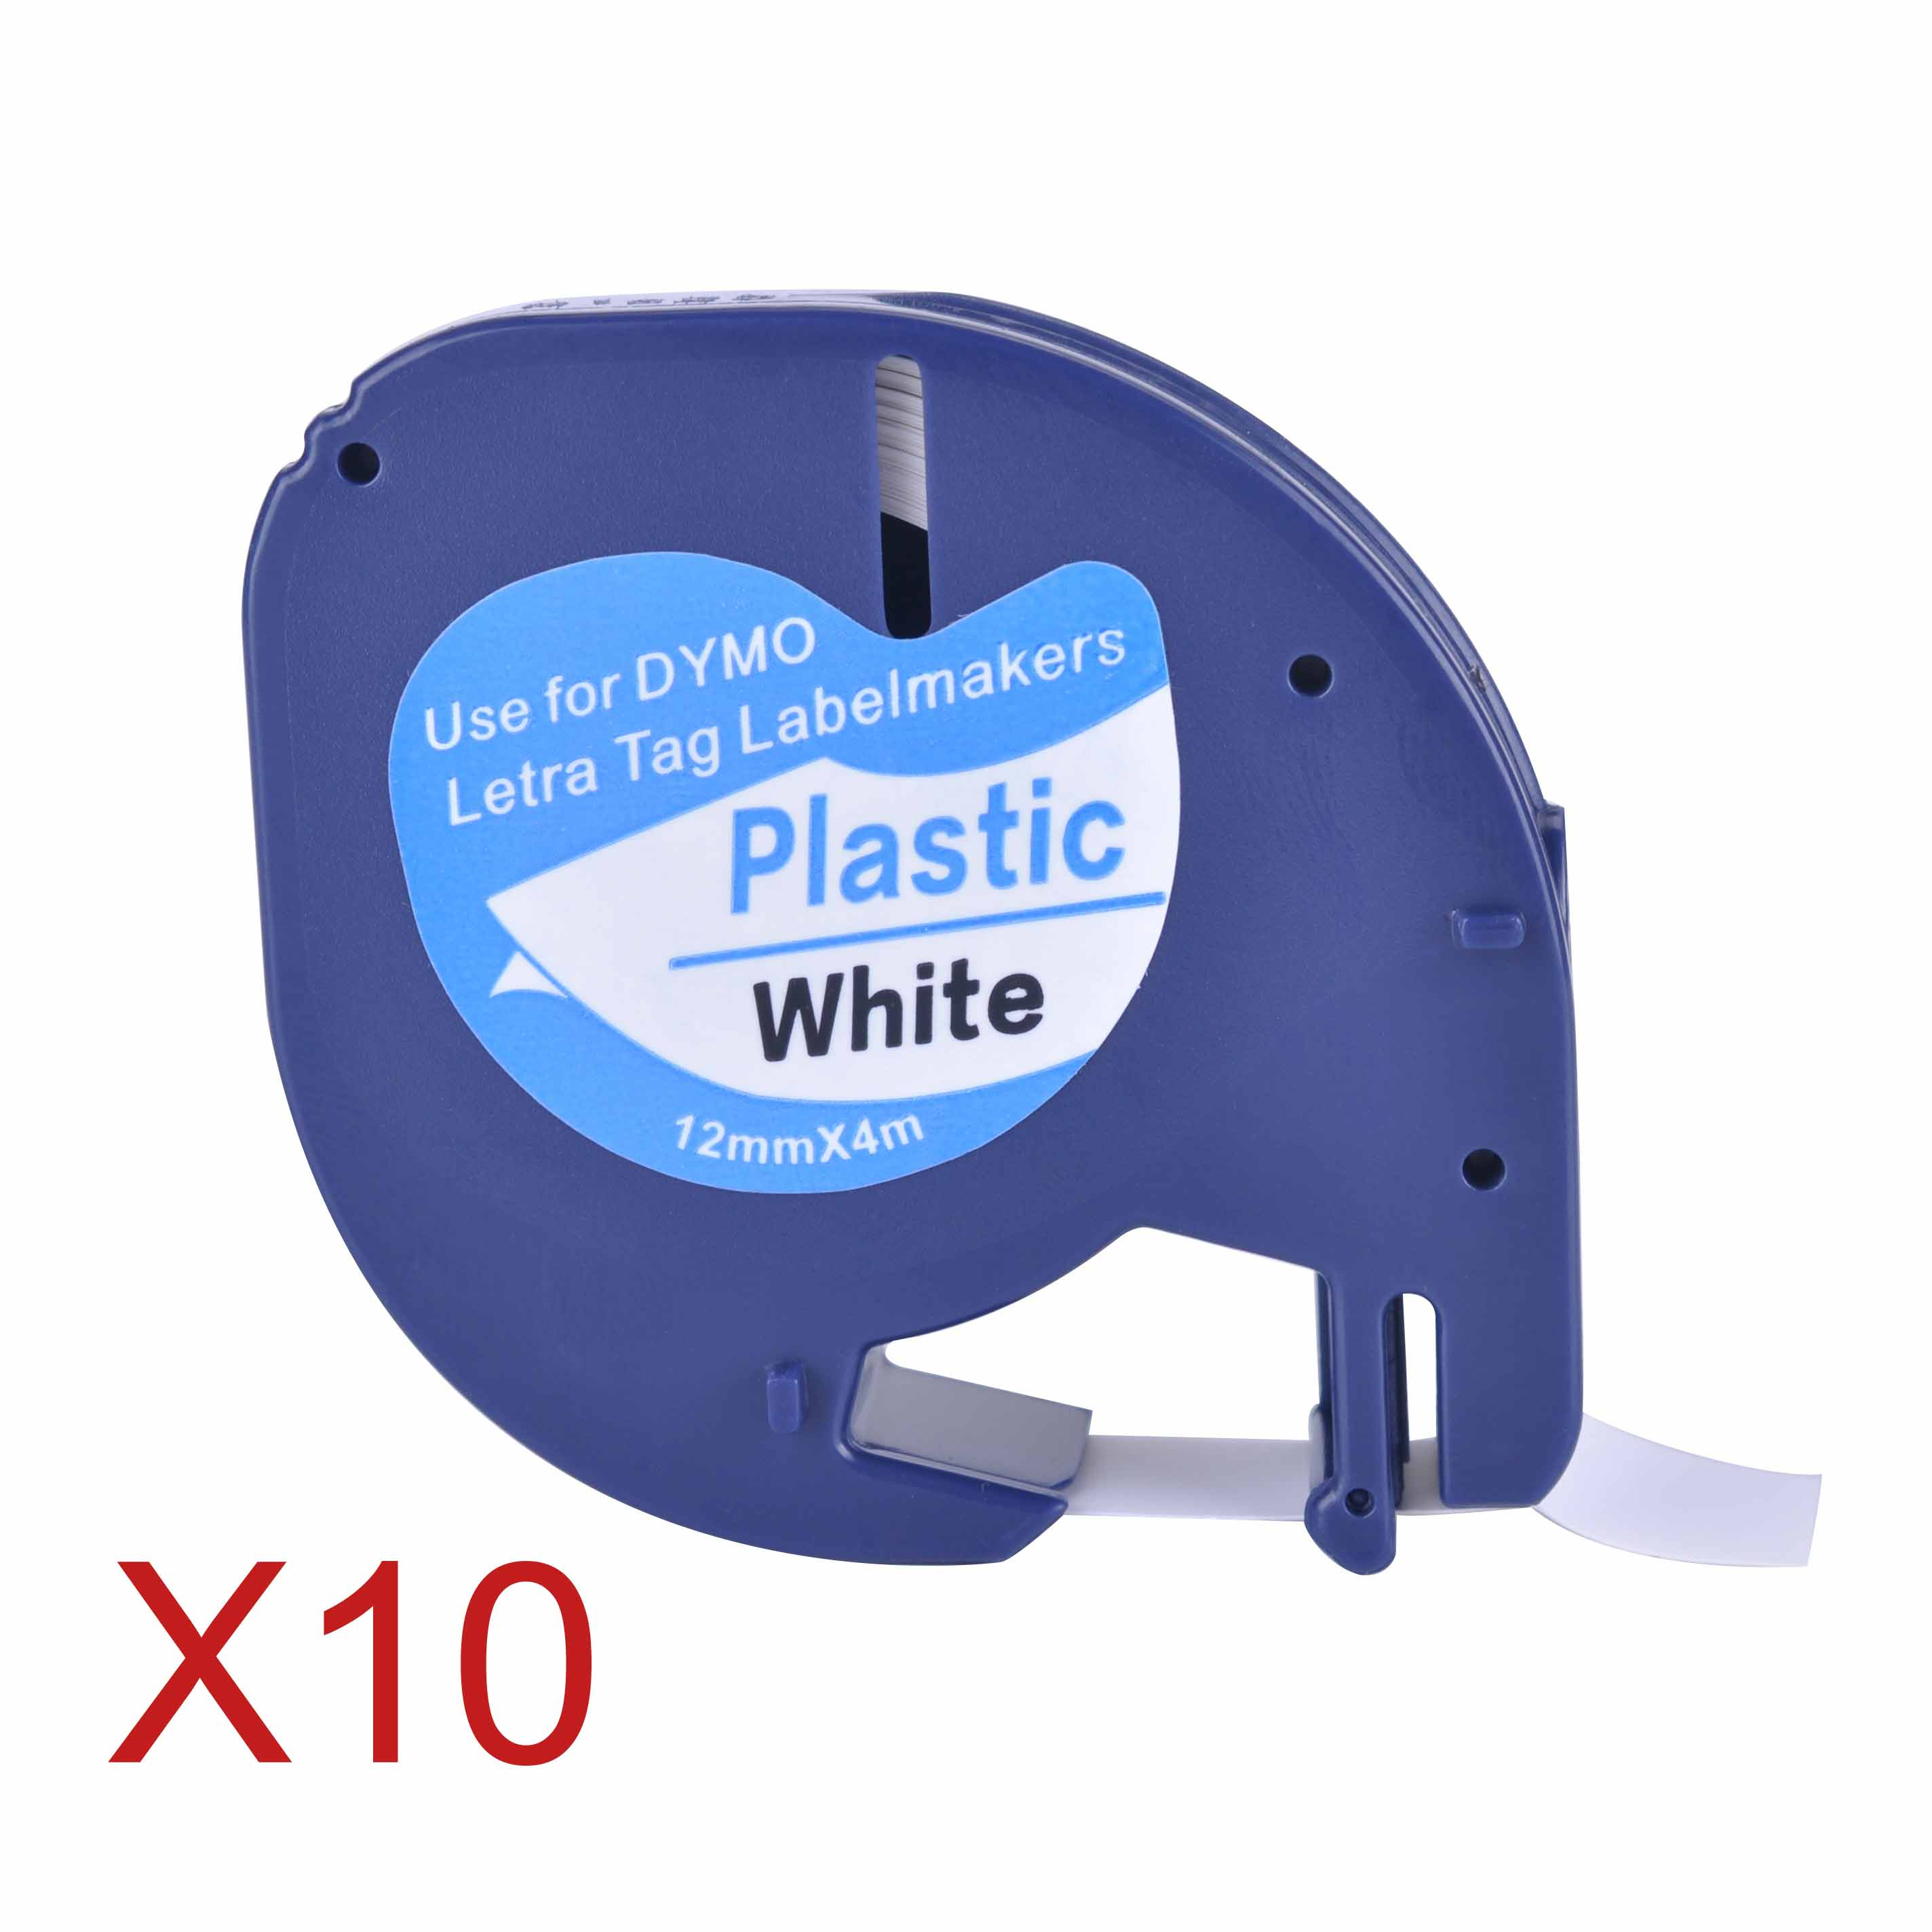 2PK Black on White Plastic Label Tape for DYMO Letra Tag S0721660 LT 91331 12mm